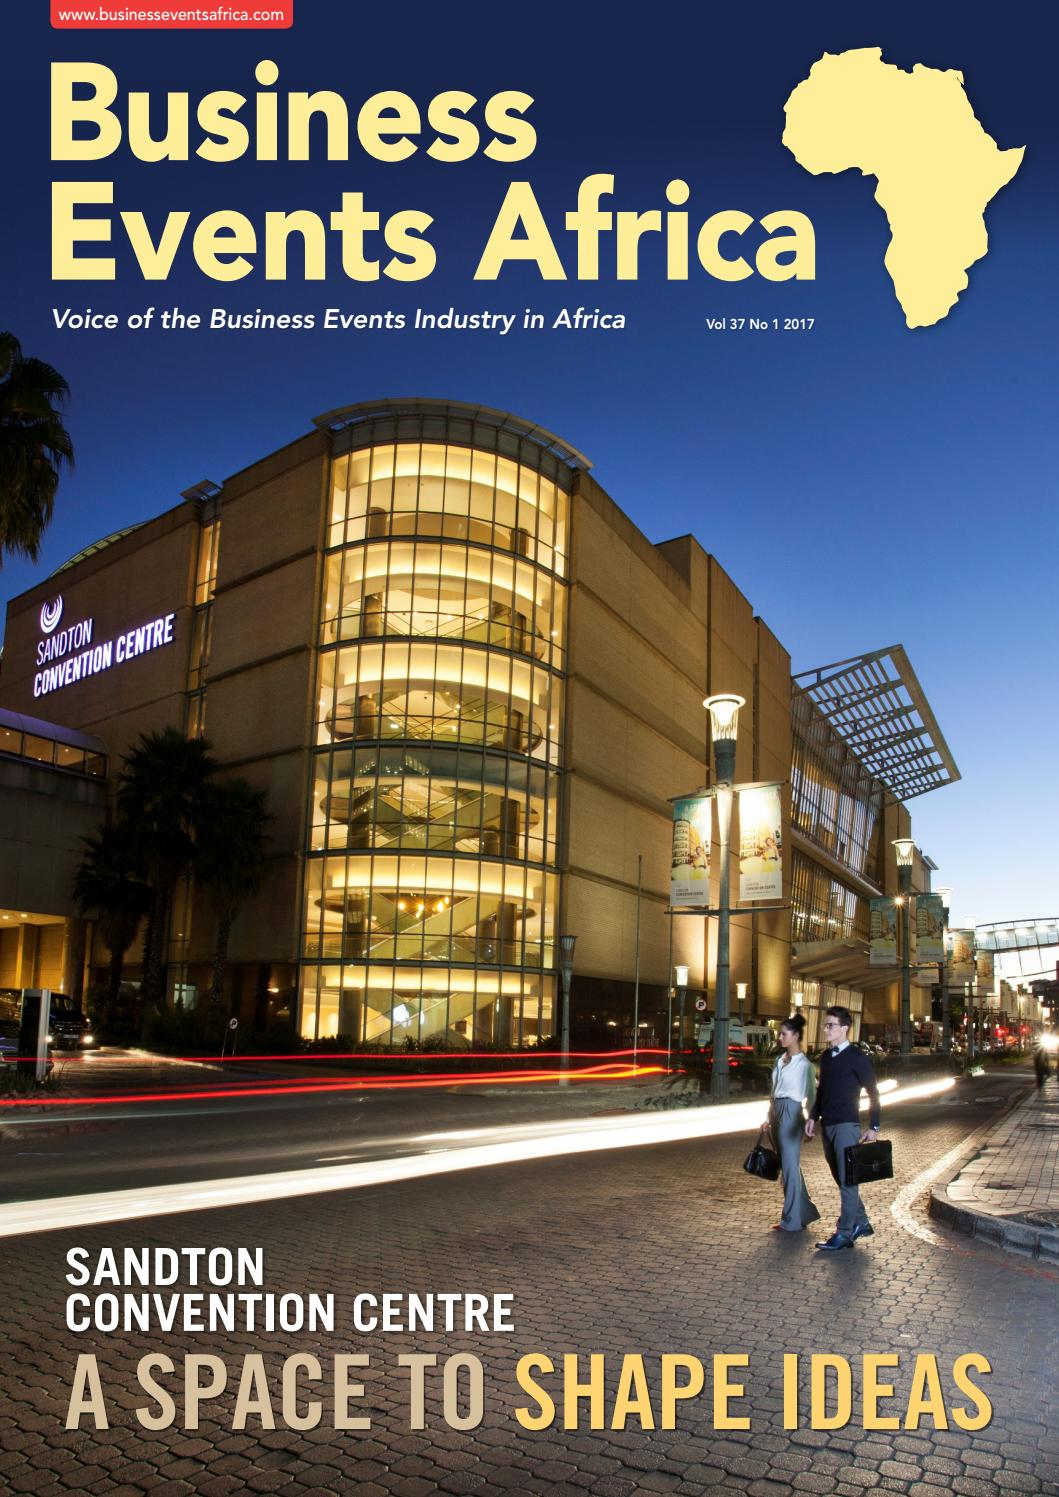 Land Rover Discovery 2 >> Business Events Africa Feb 2017 Vol 37 No 1 by Contact Publications - Issuu